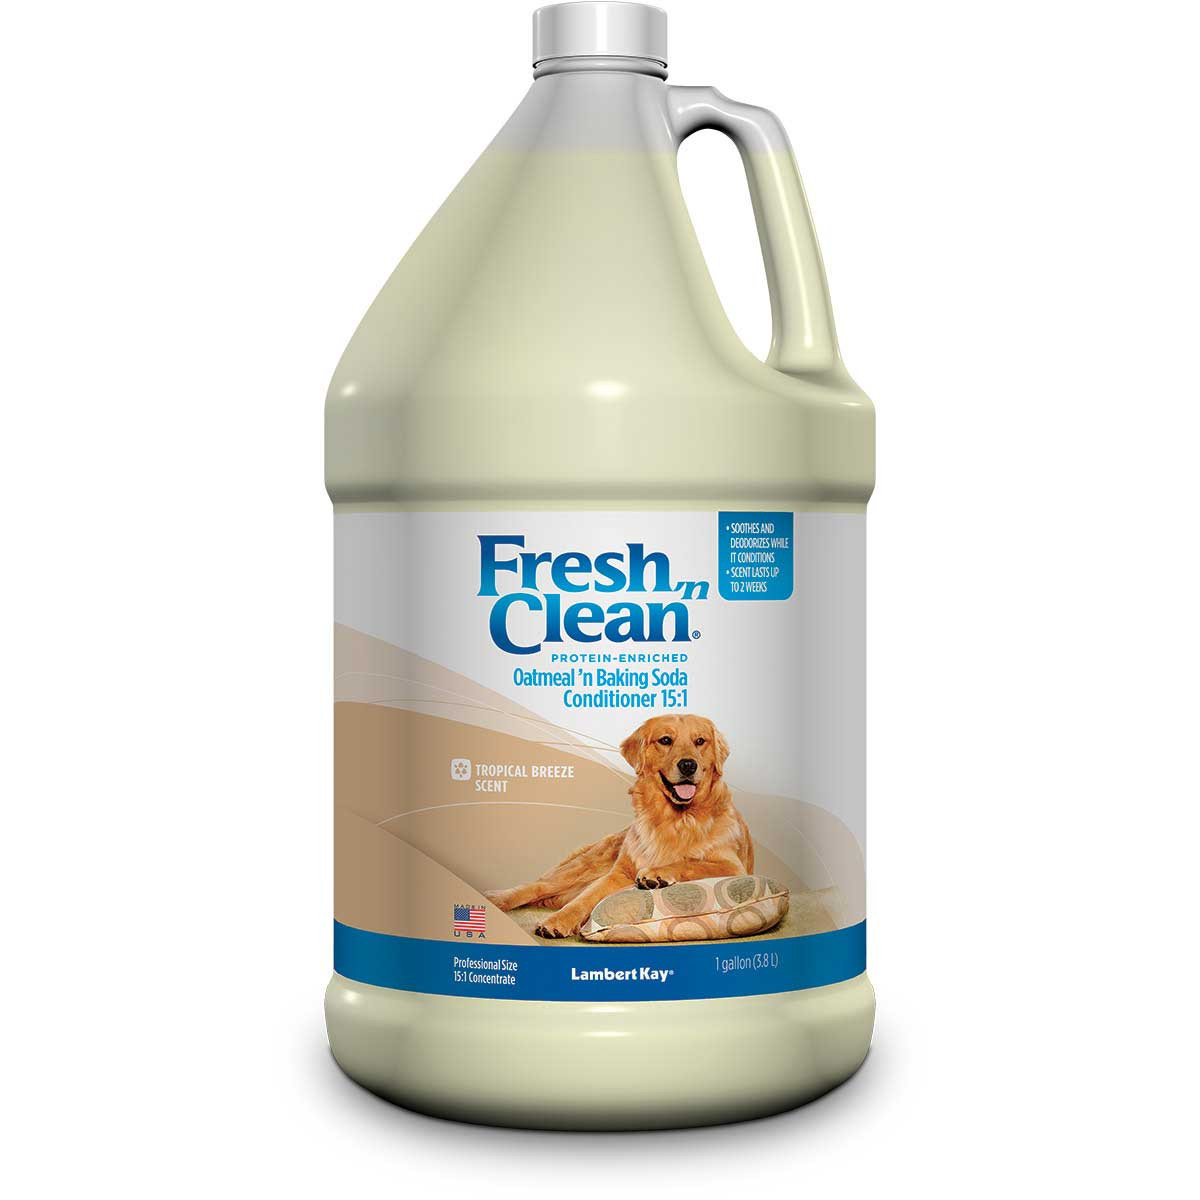 Fresh 'n Clean Oatmeal 'n Baking Soda Conditioner For Dogs Concentrated 15:1 Gallon